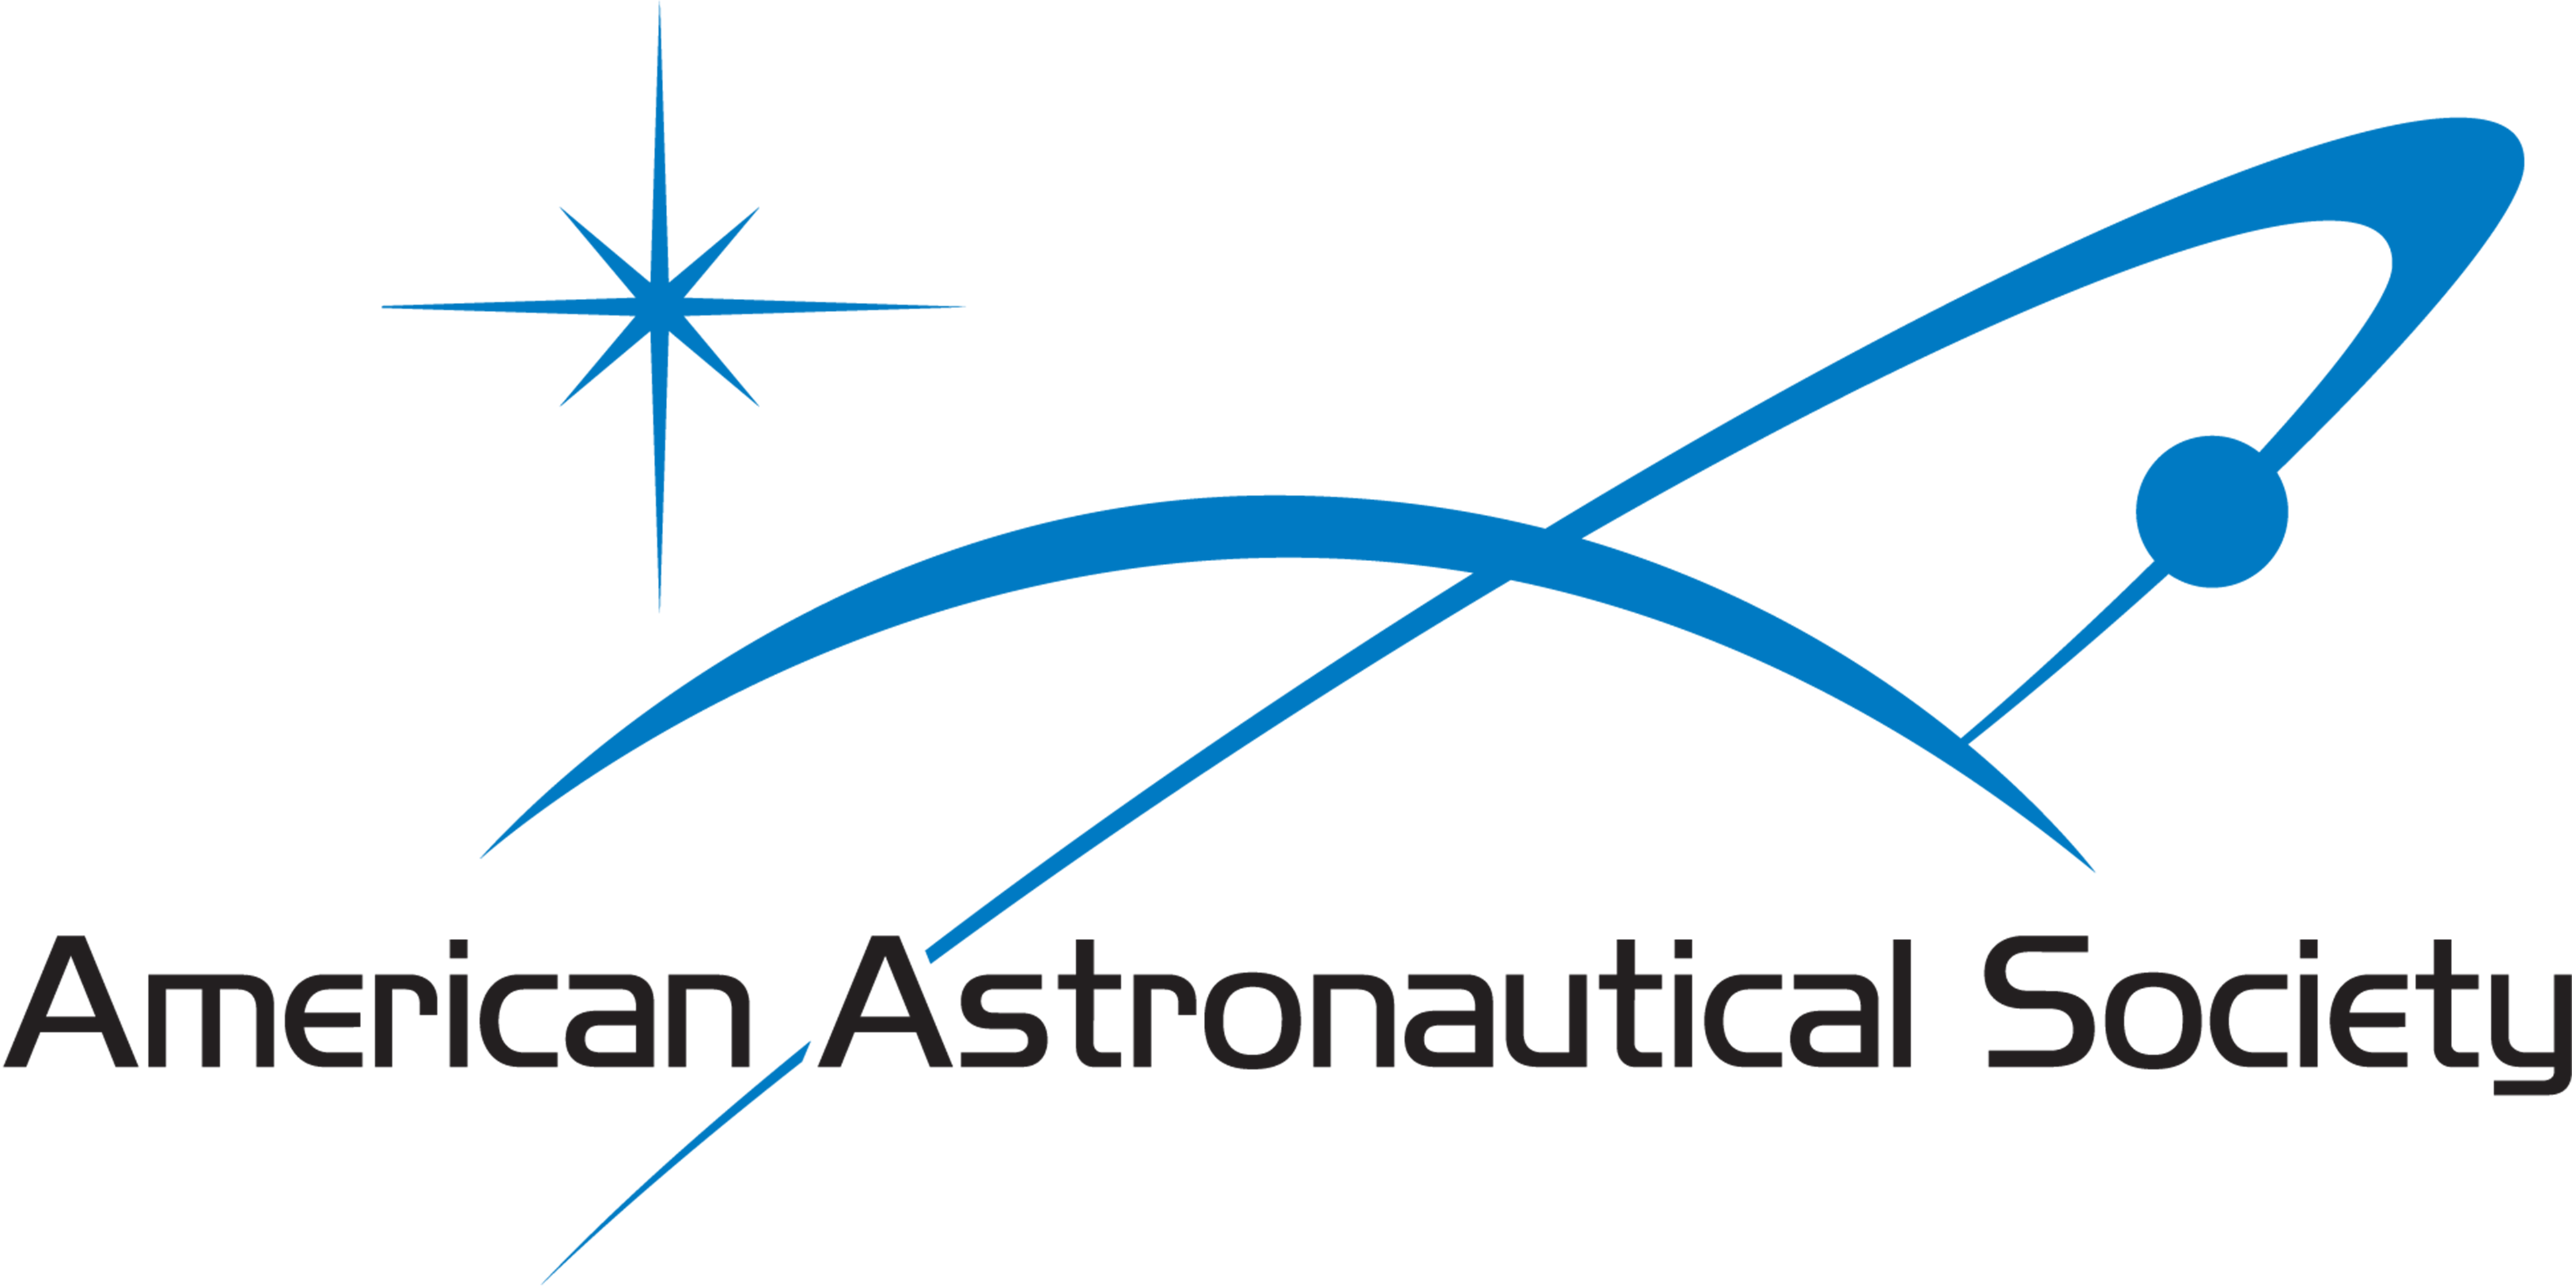 American Astronautical Society